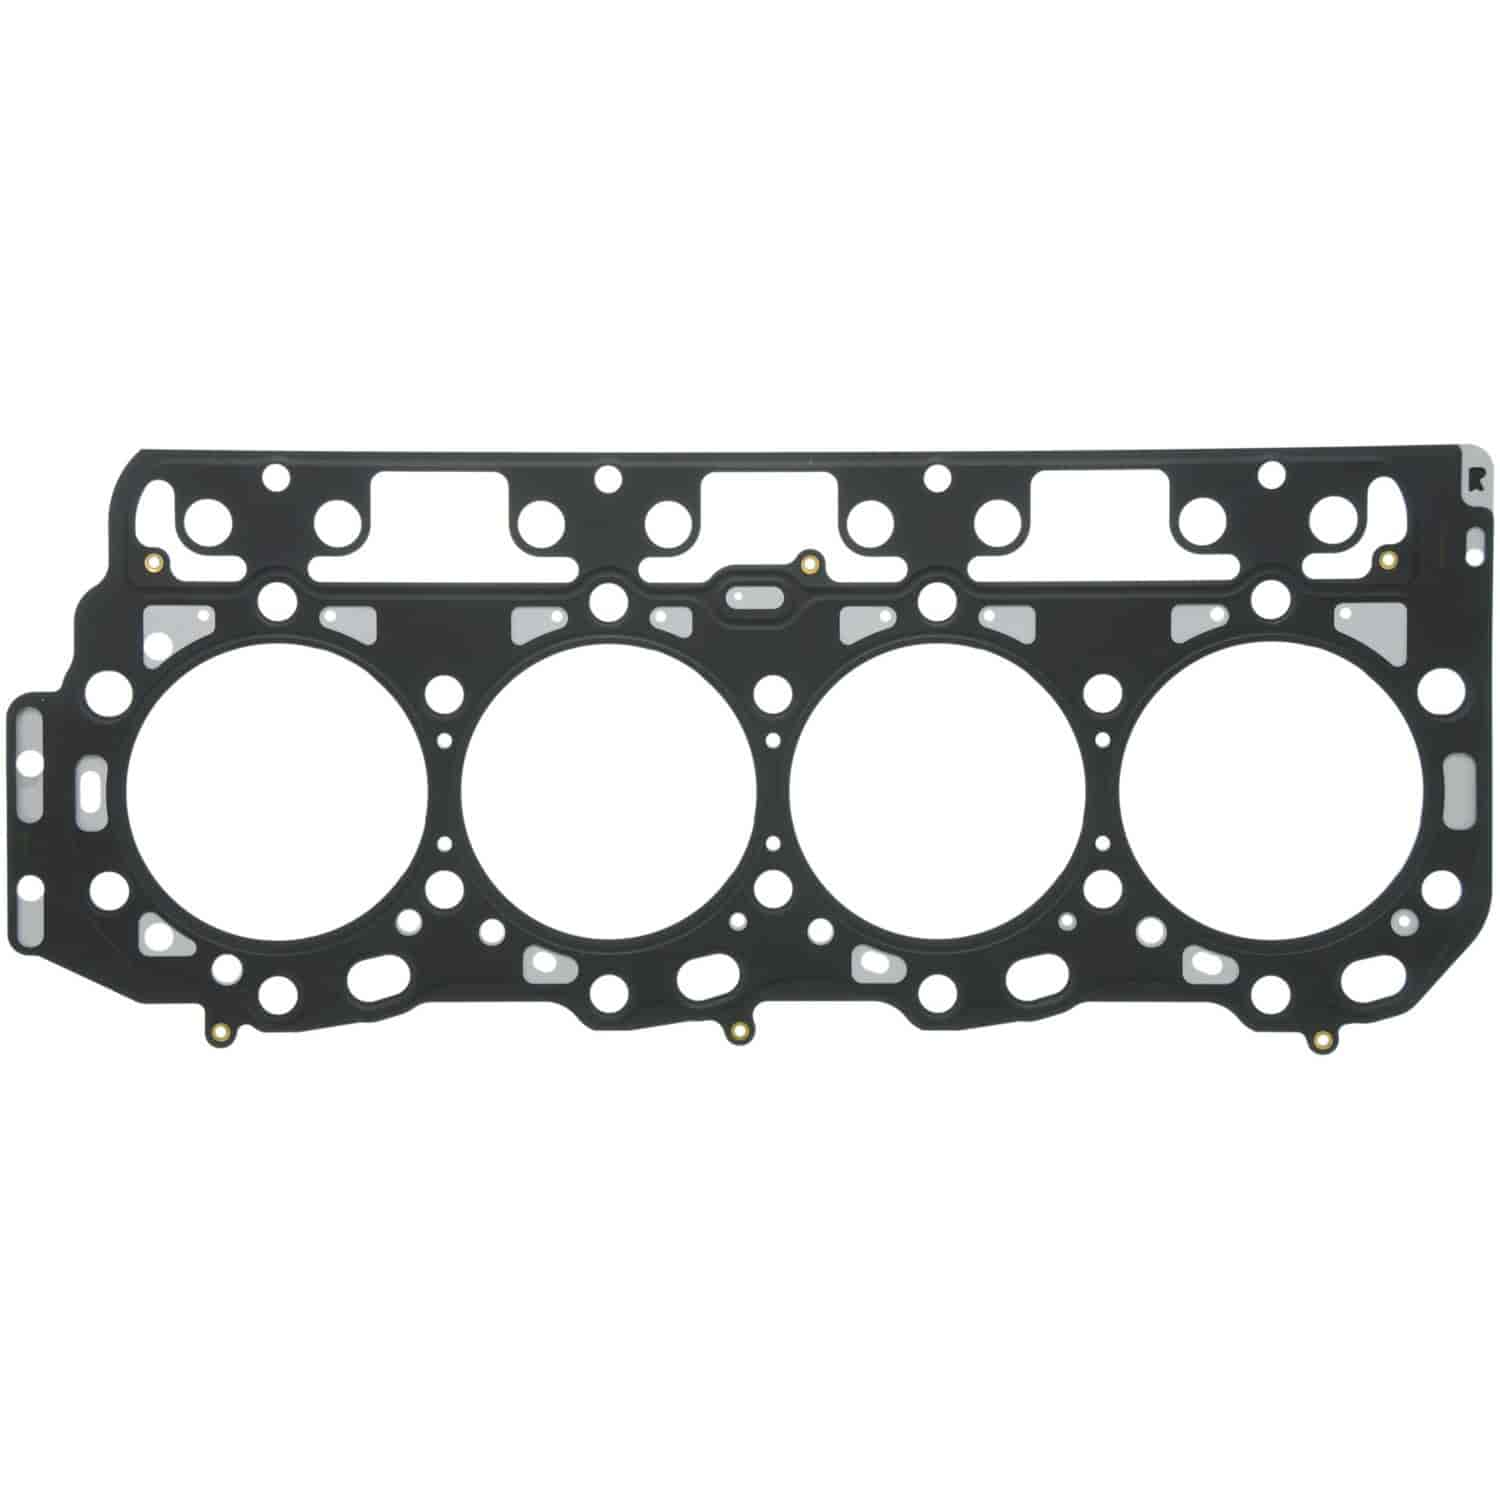 Clevite Mahle Cylinder Head Gasket Chevy Duramax